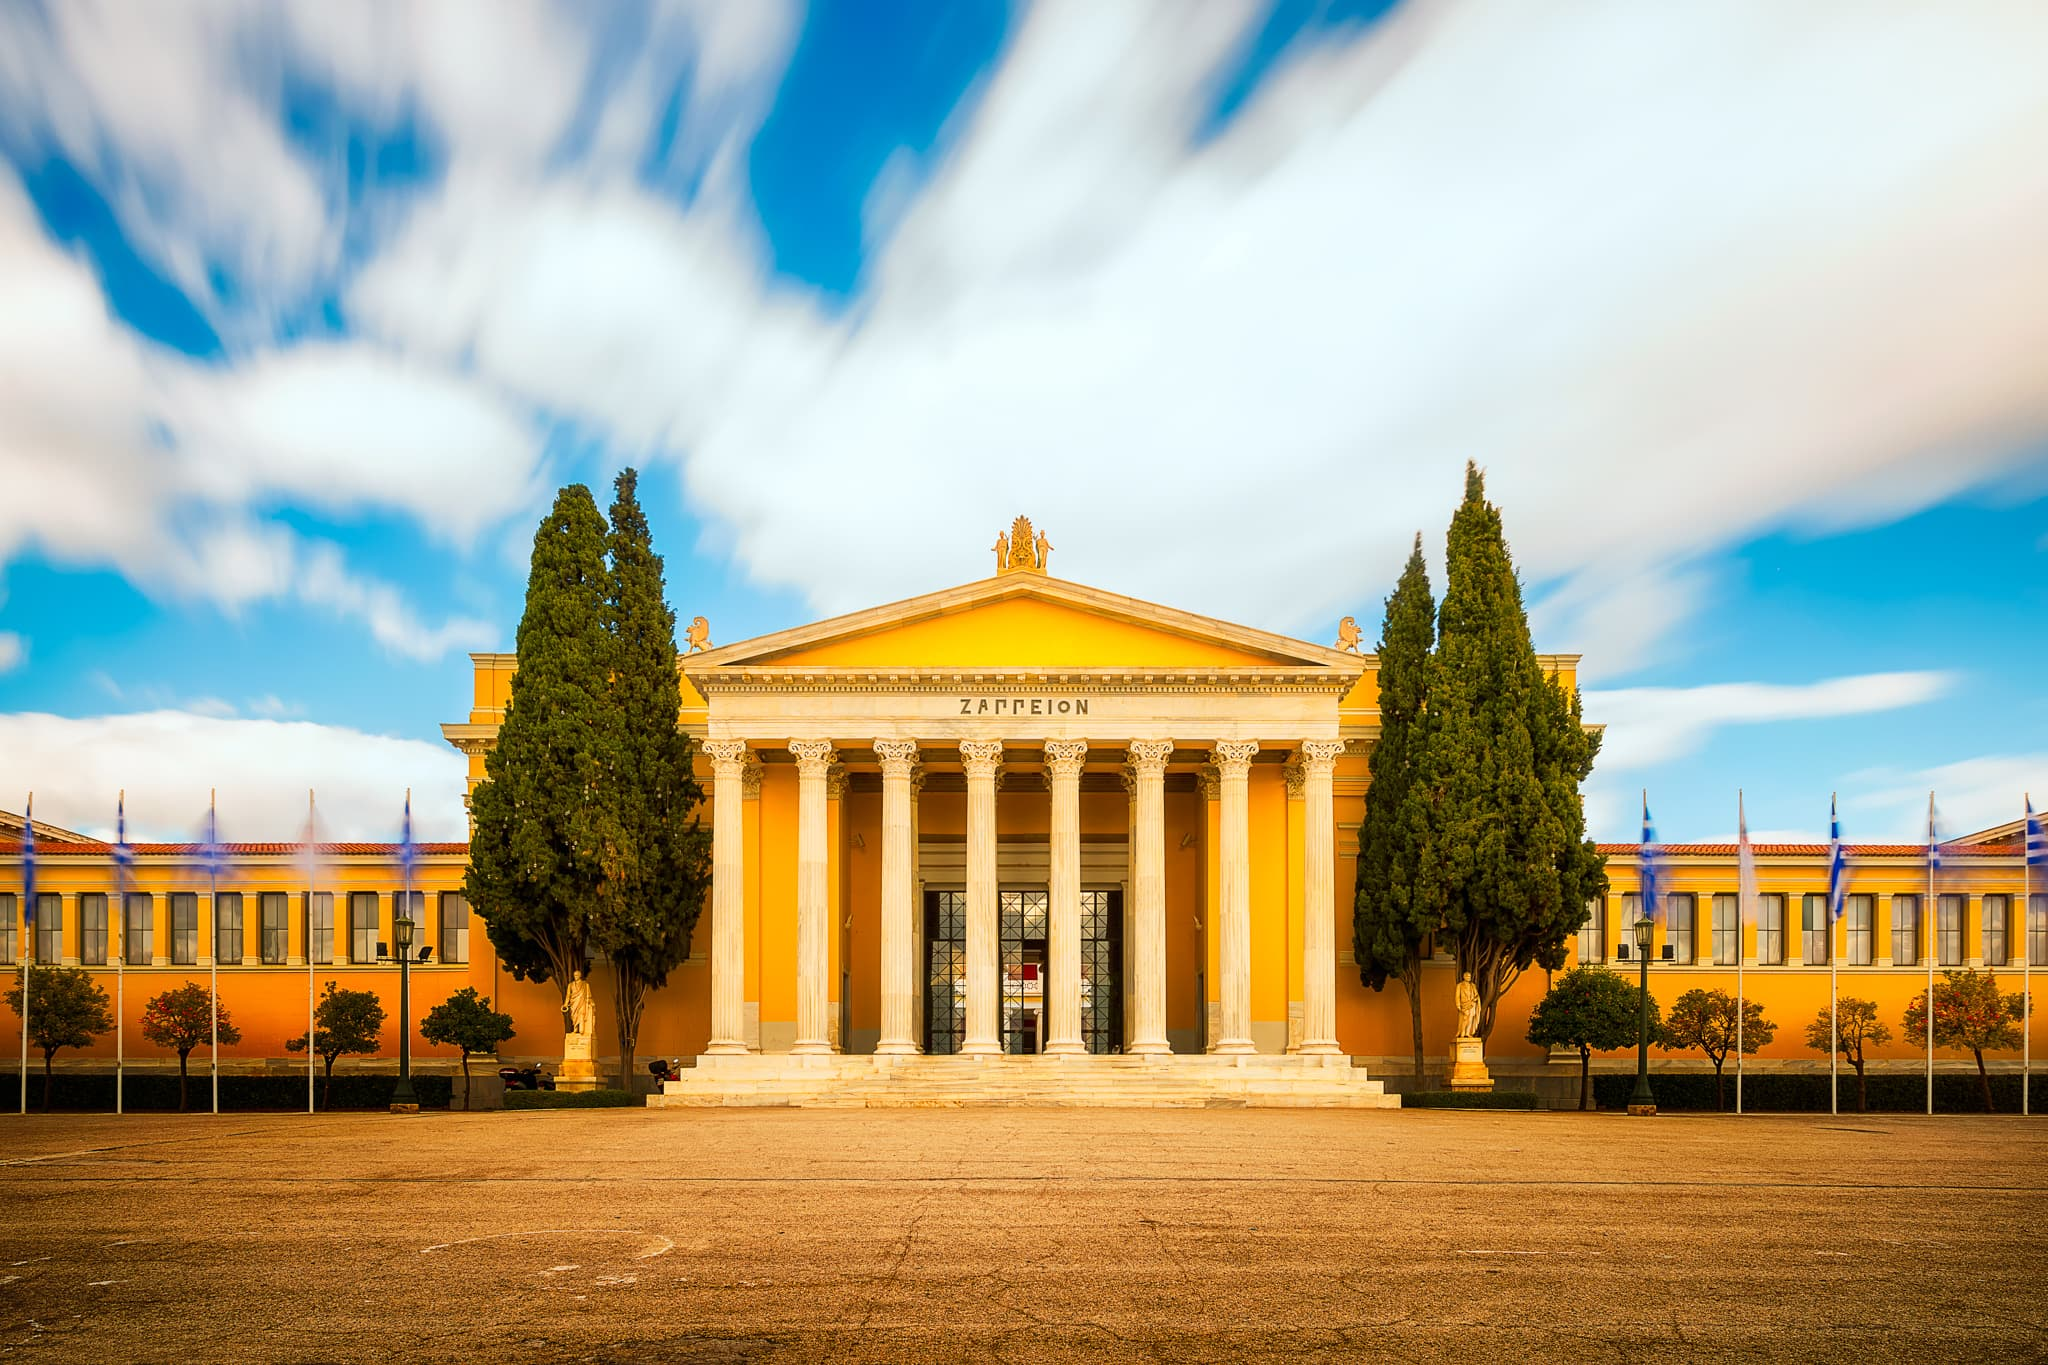 This bright picture shows the exterior of the Zappeion Hall in Athens, Greece.